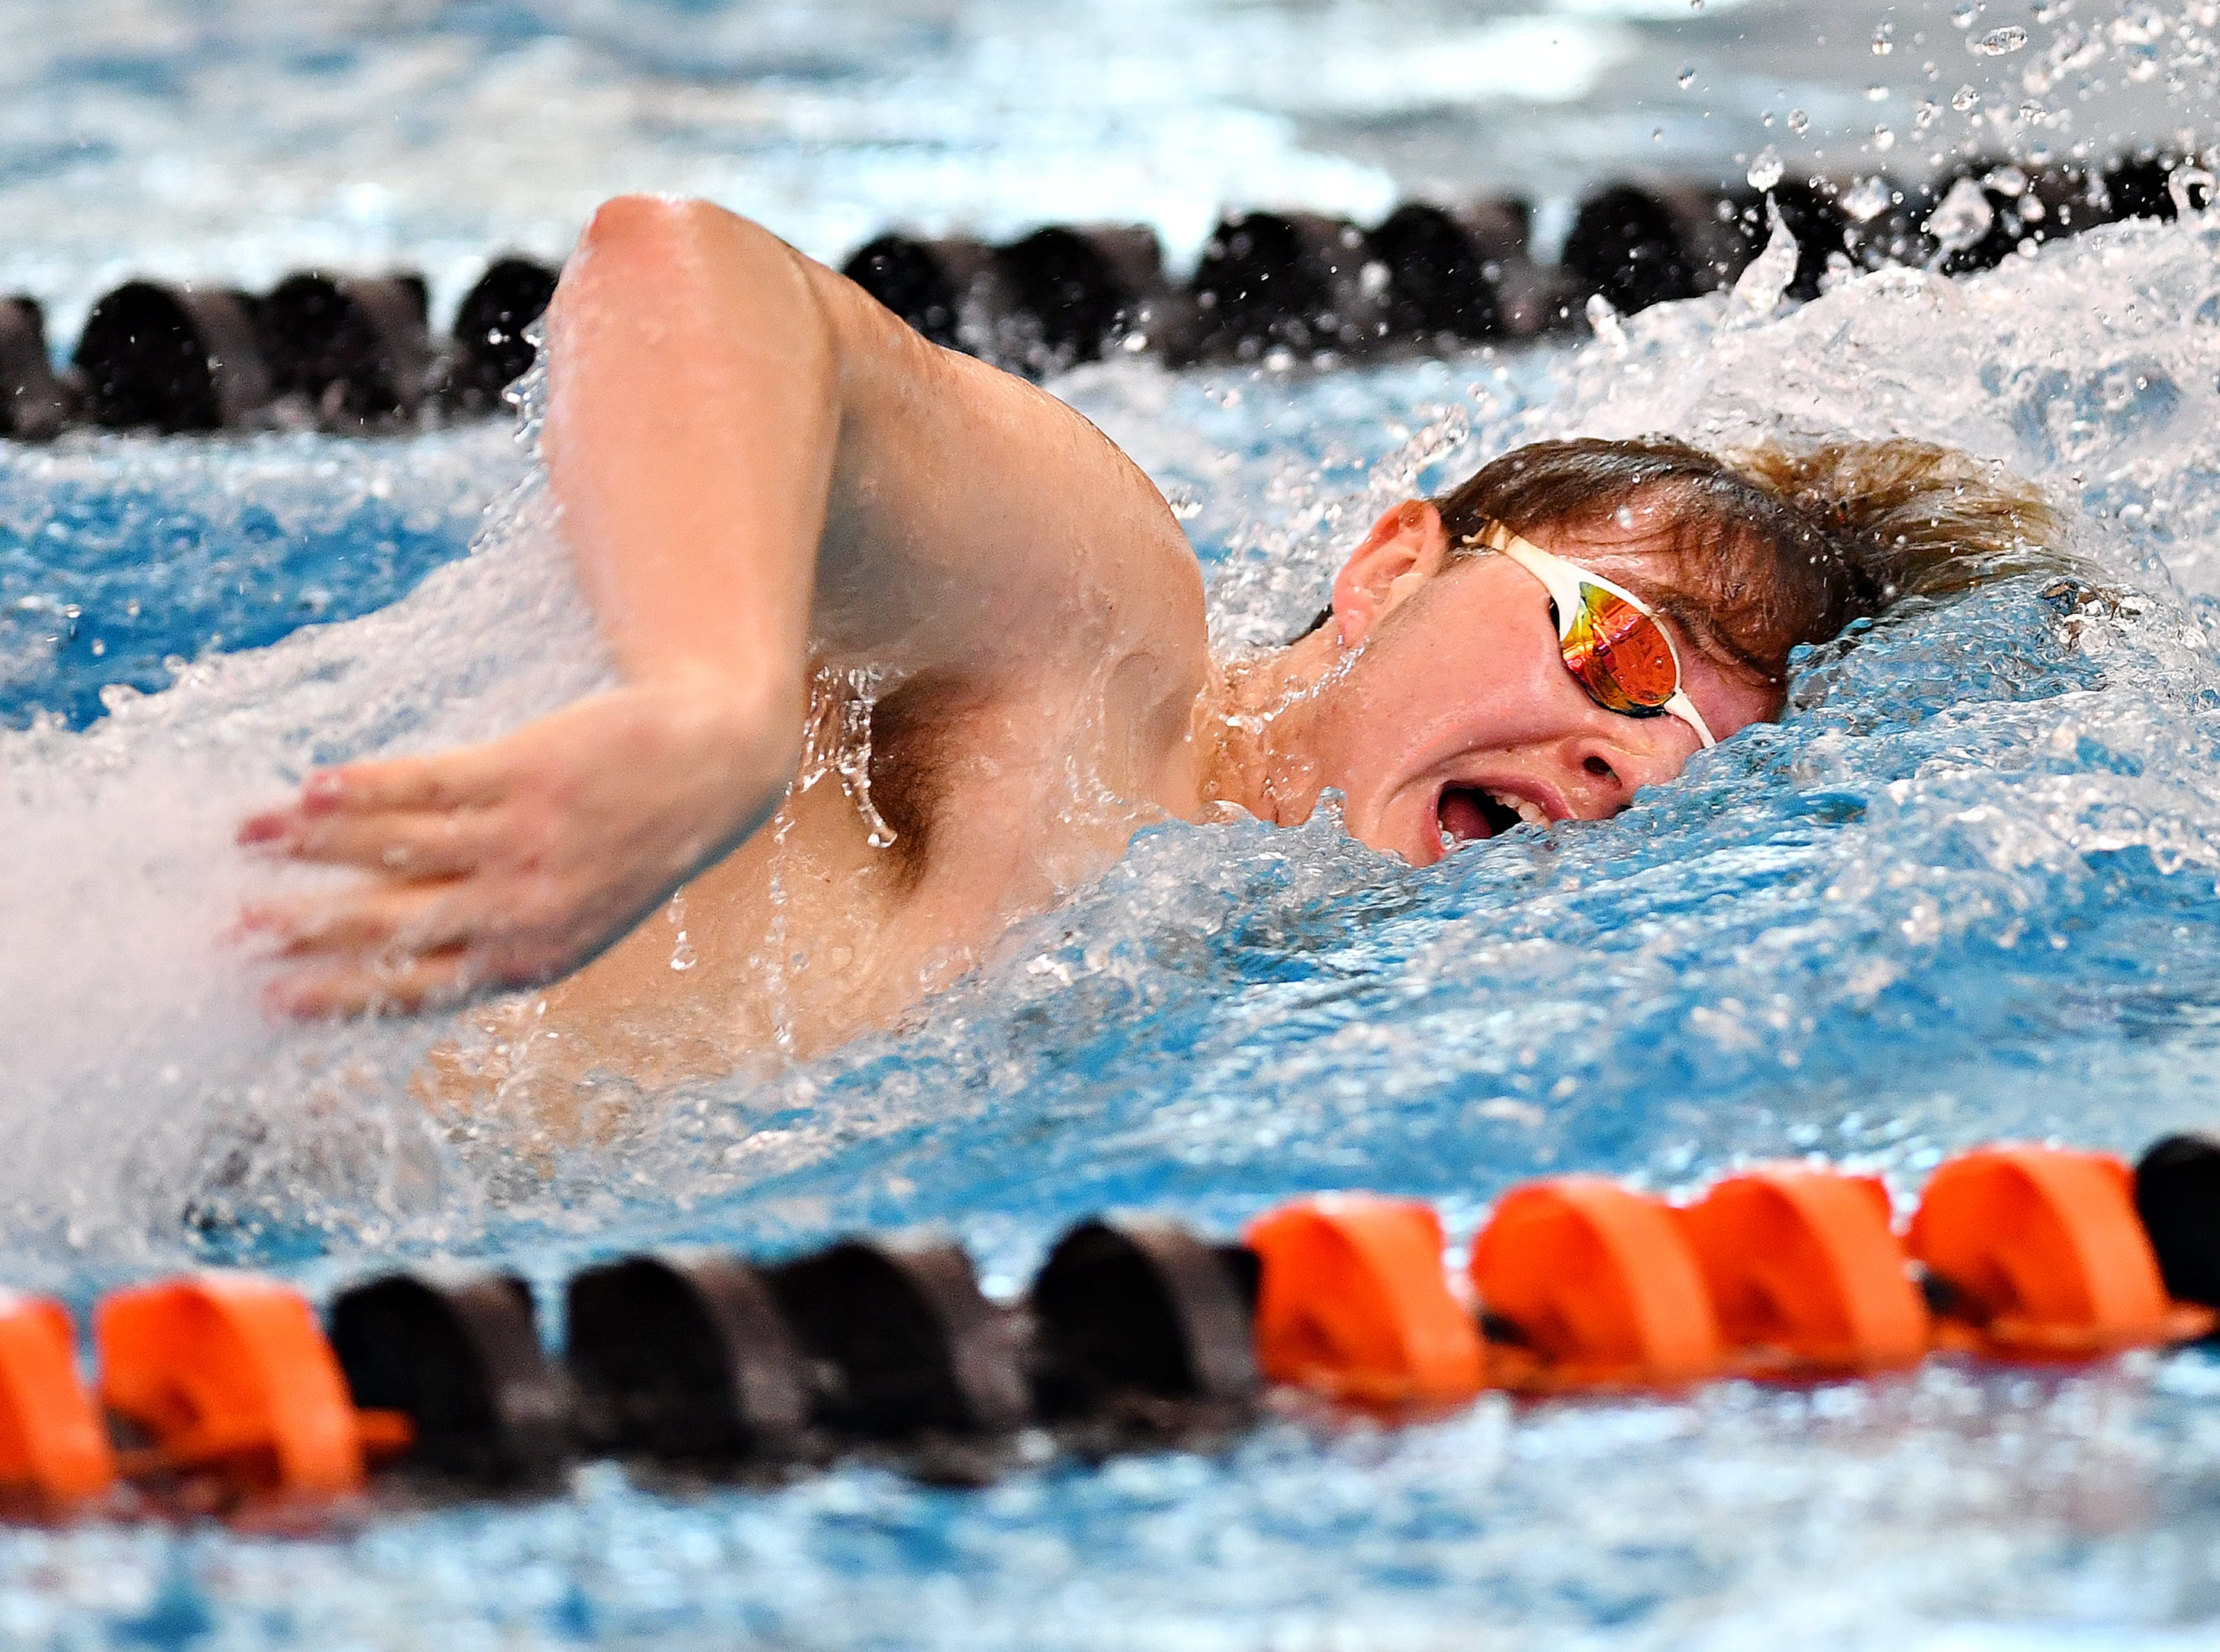 Central York's Cody Beck competes in the 400 Yard Freestyle Relay event during the York-Adams League Swimming Championship at Central York High School in Springettsbury Township, Saturday, Feb. 9, 2019. Dawn J. Sagert photo